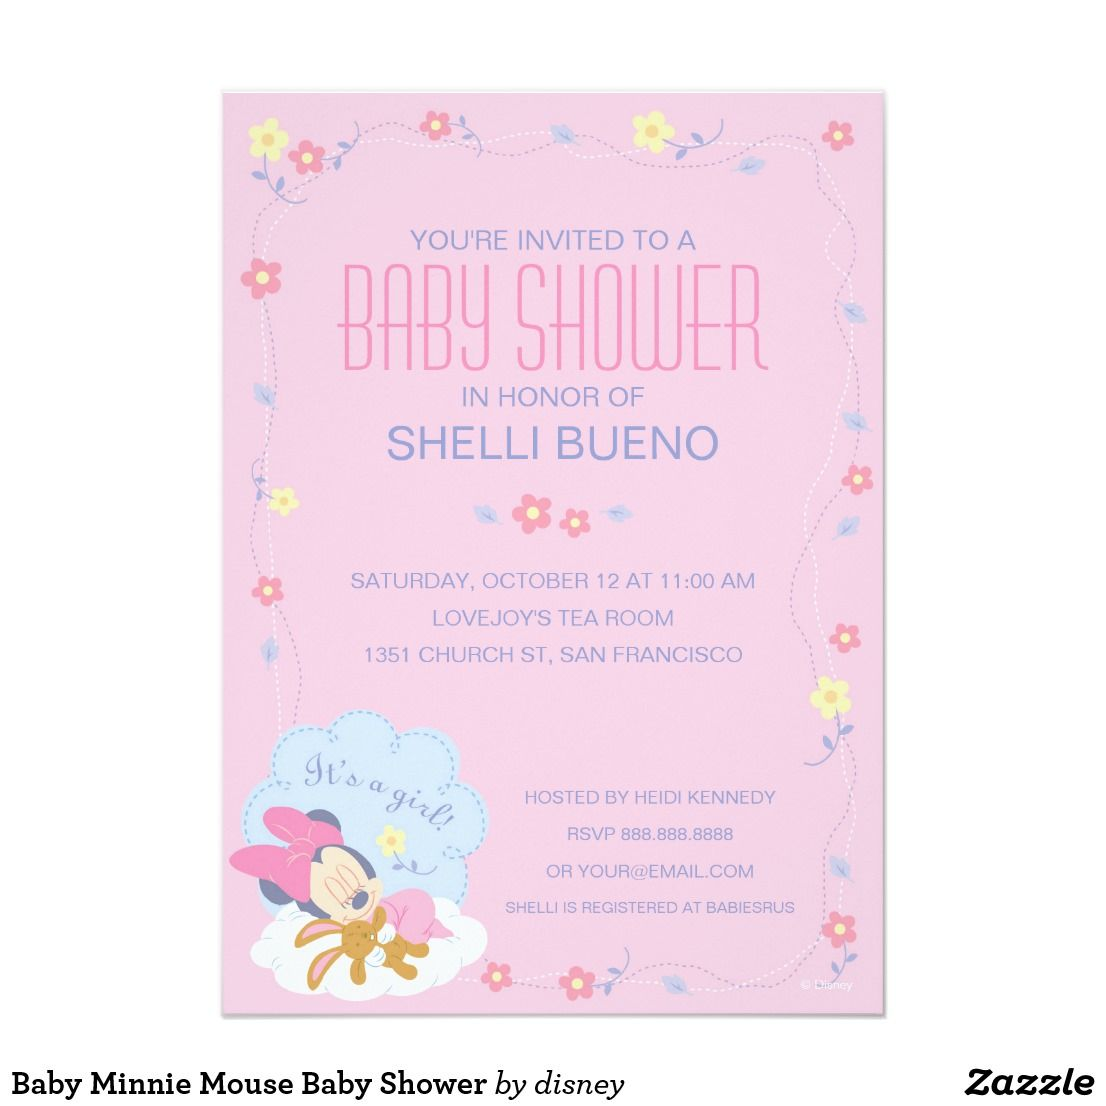 Baby Minnie Mouse Baby Shower Card | Minnie mouse baby shower and ...